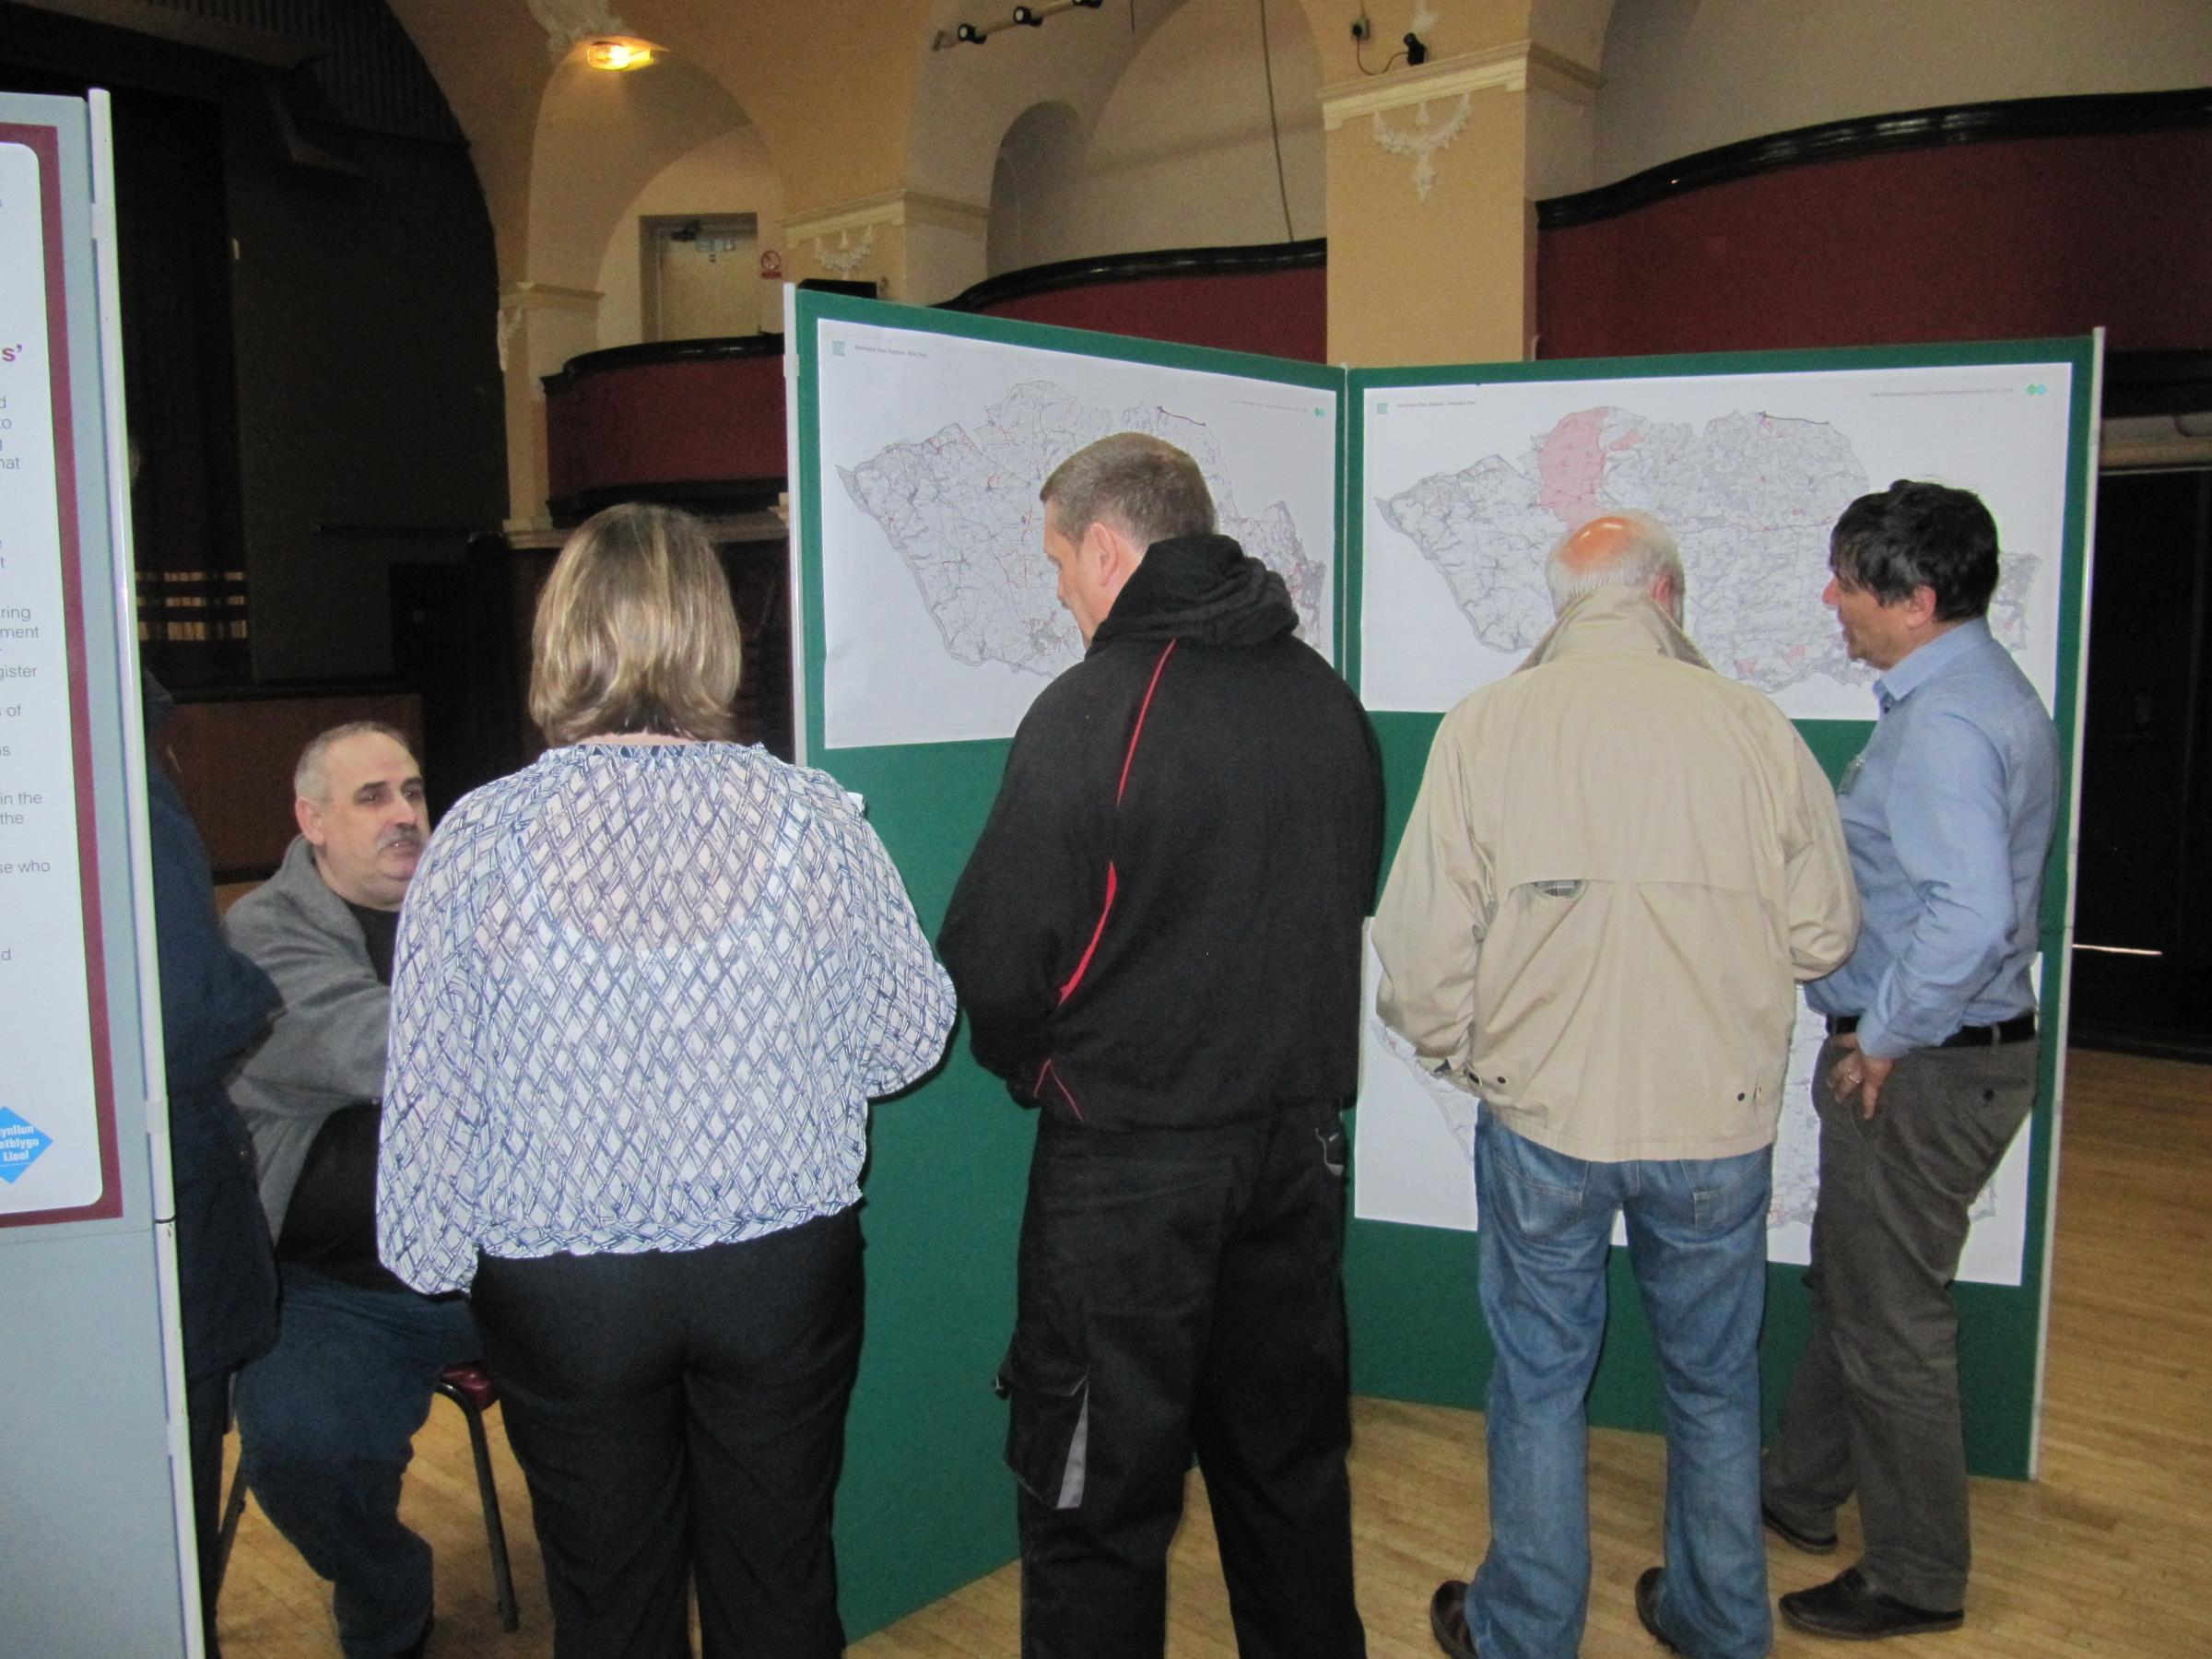 Consultation over alternative sites for LDP held in Penarth